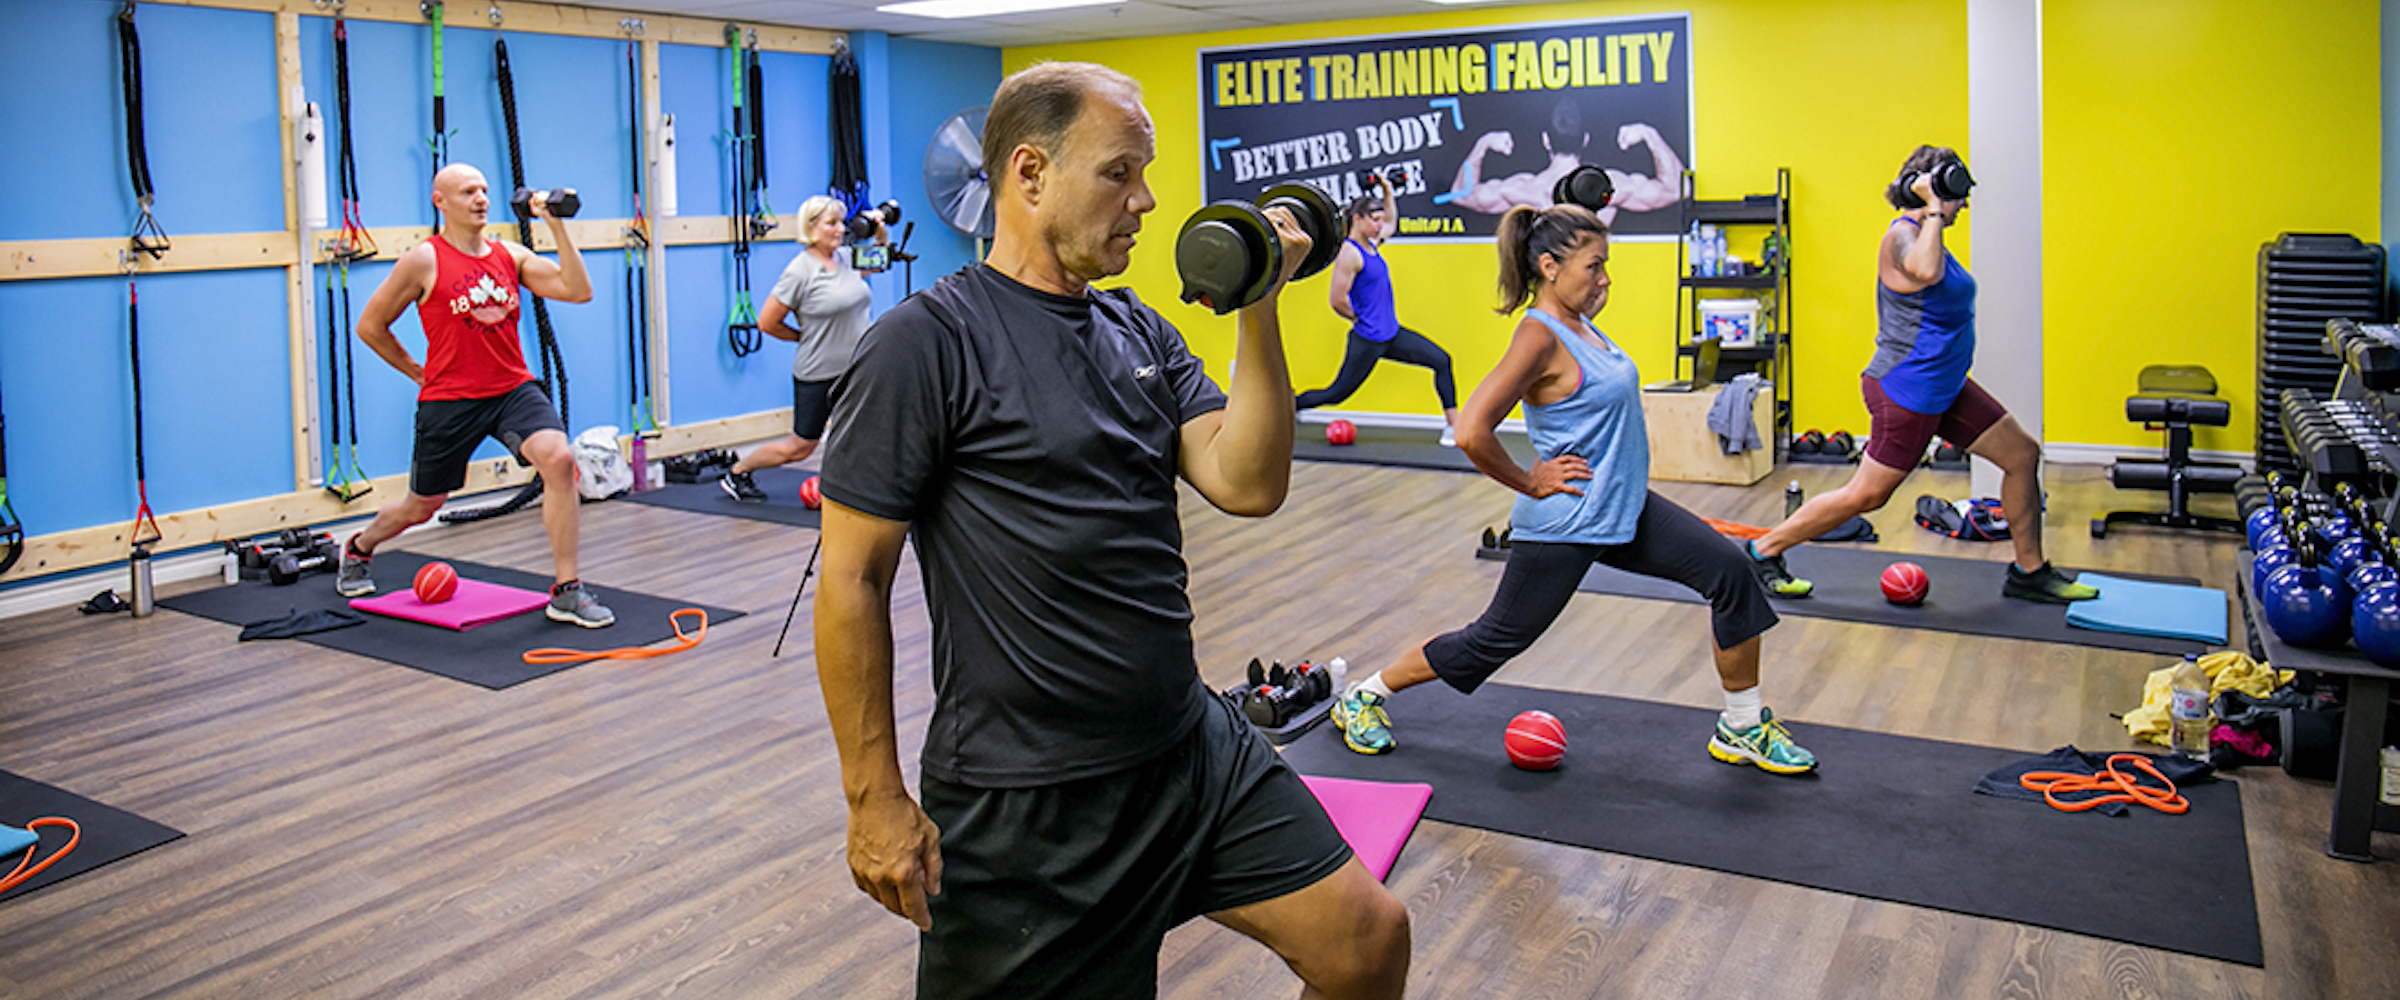 Fitness and Massage Package Pricing Header Image - Elite Training Facility